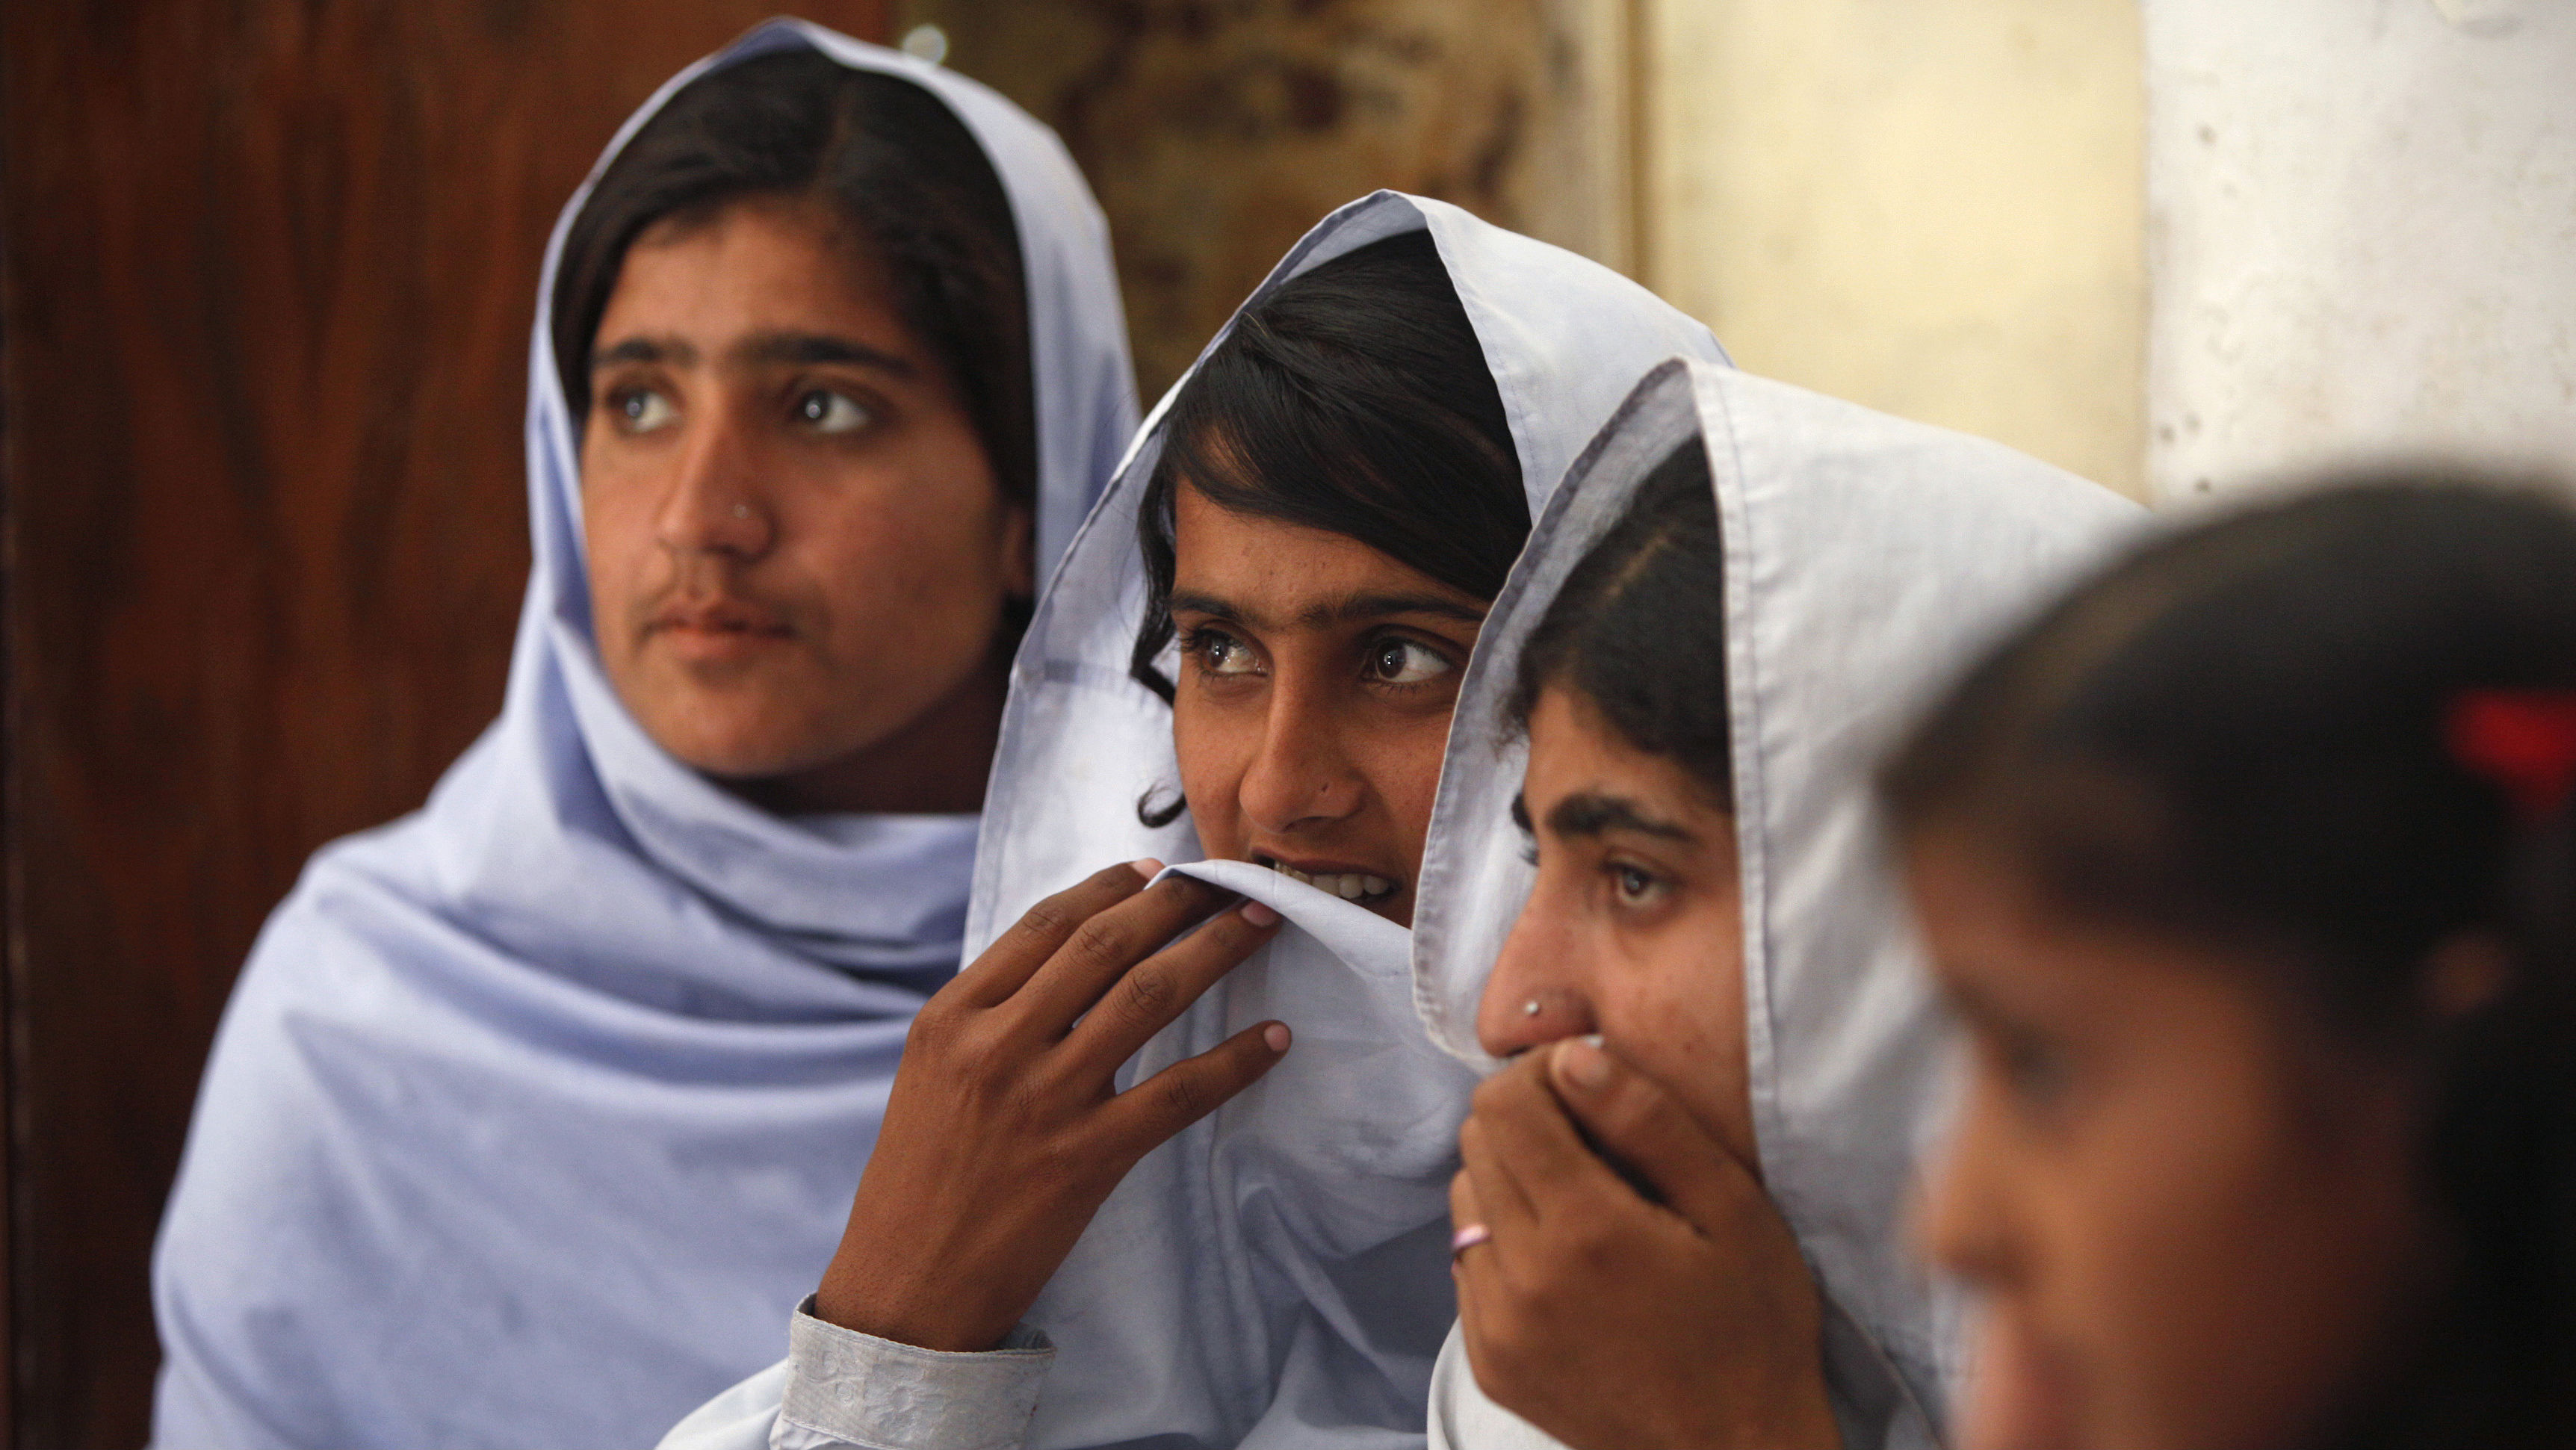 Students react while attending a lecture on preventive measures to take when sexual harassment occurs, during a class in Shadabad Girls Elementary School in Pir Mashaikh village in Johi, some 325 km (202 miles) from Karachi February 12, 2014. Sex education is common in Western schools but these ground-breaking lessons are taking place in deeply conservative rural Pakistan, a Muslim nation of 180 million people. Picture taken February 12, 2014. REUTERS/Akhtar Soomro (PAKISTAN - Tags: EDUCATION)